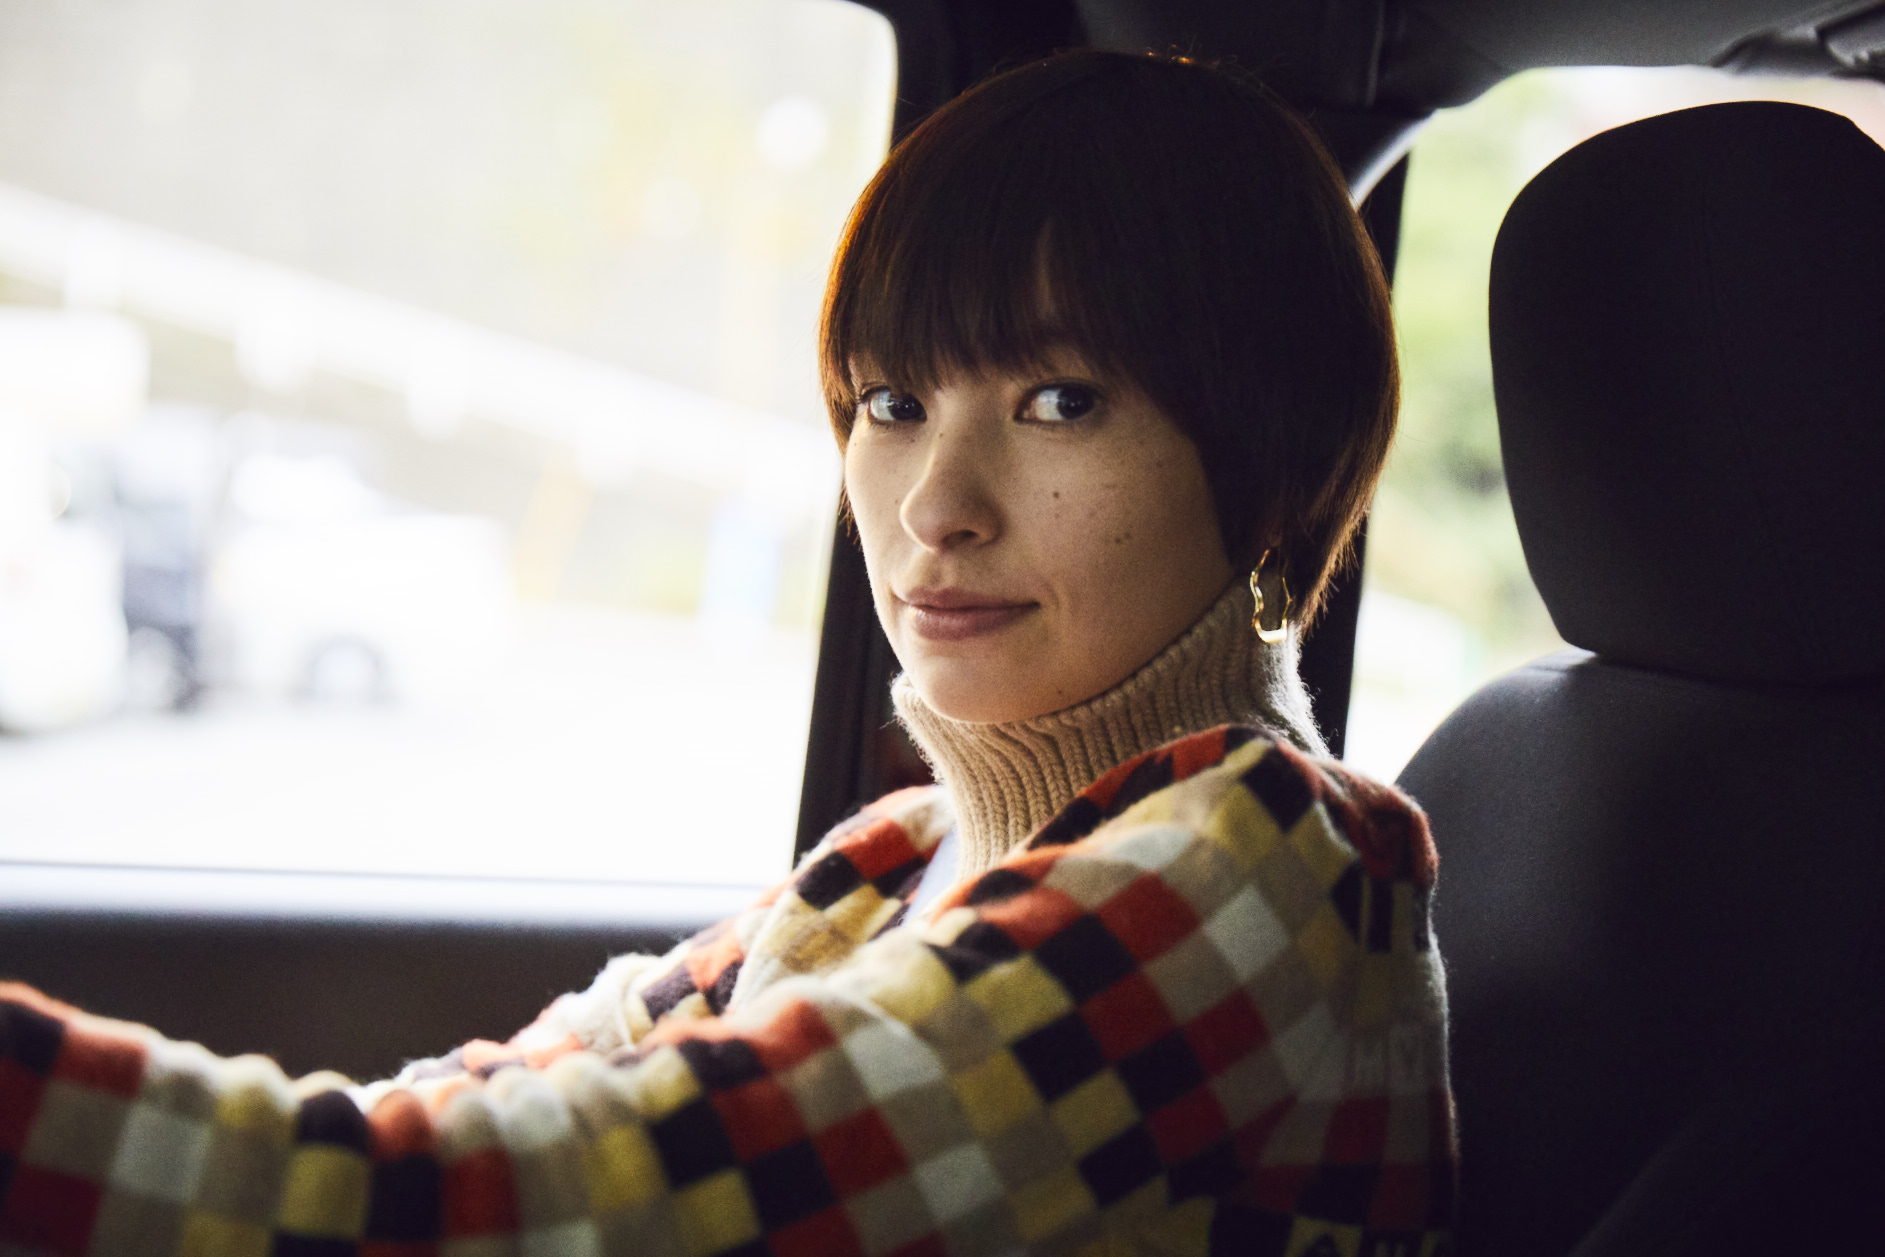 ho_104899 My Jeep®,My Life. ボクとJeep®の暮らしかた。女優・太田莉菜